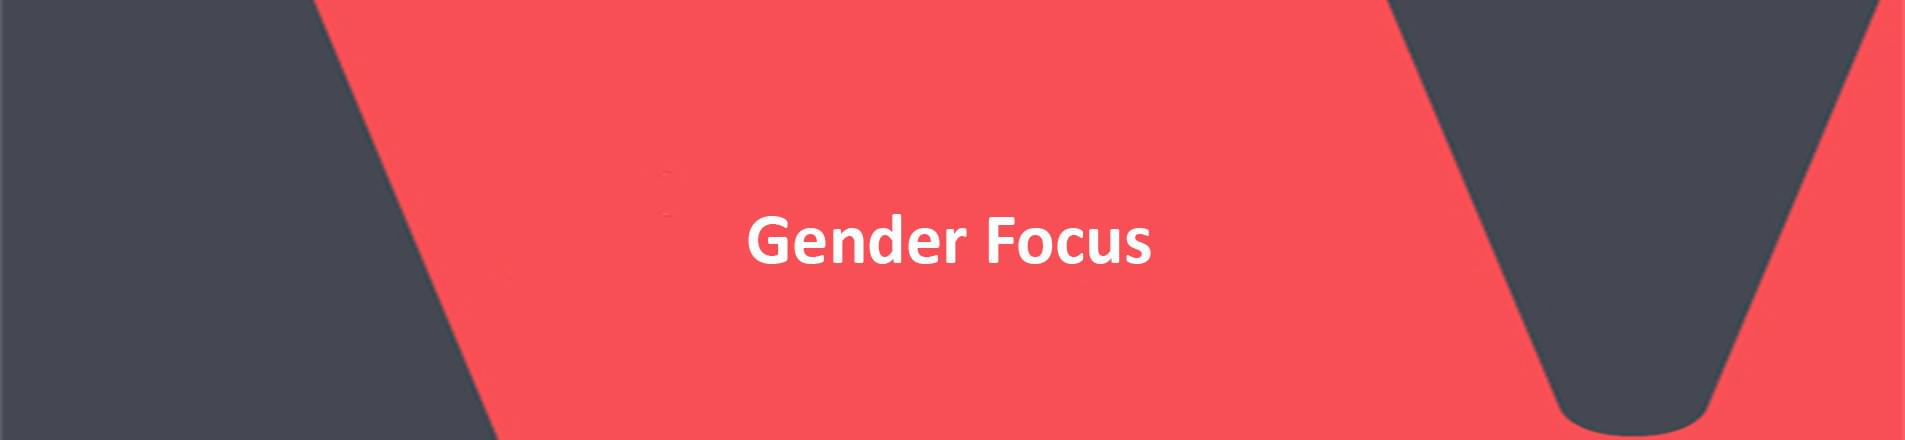 Red banner with white text spelling Gender Focus.